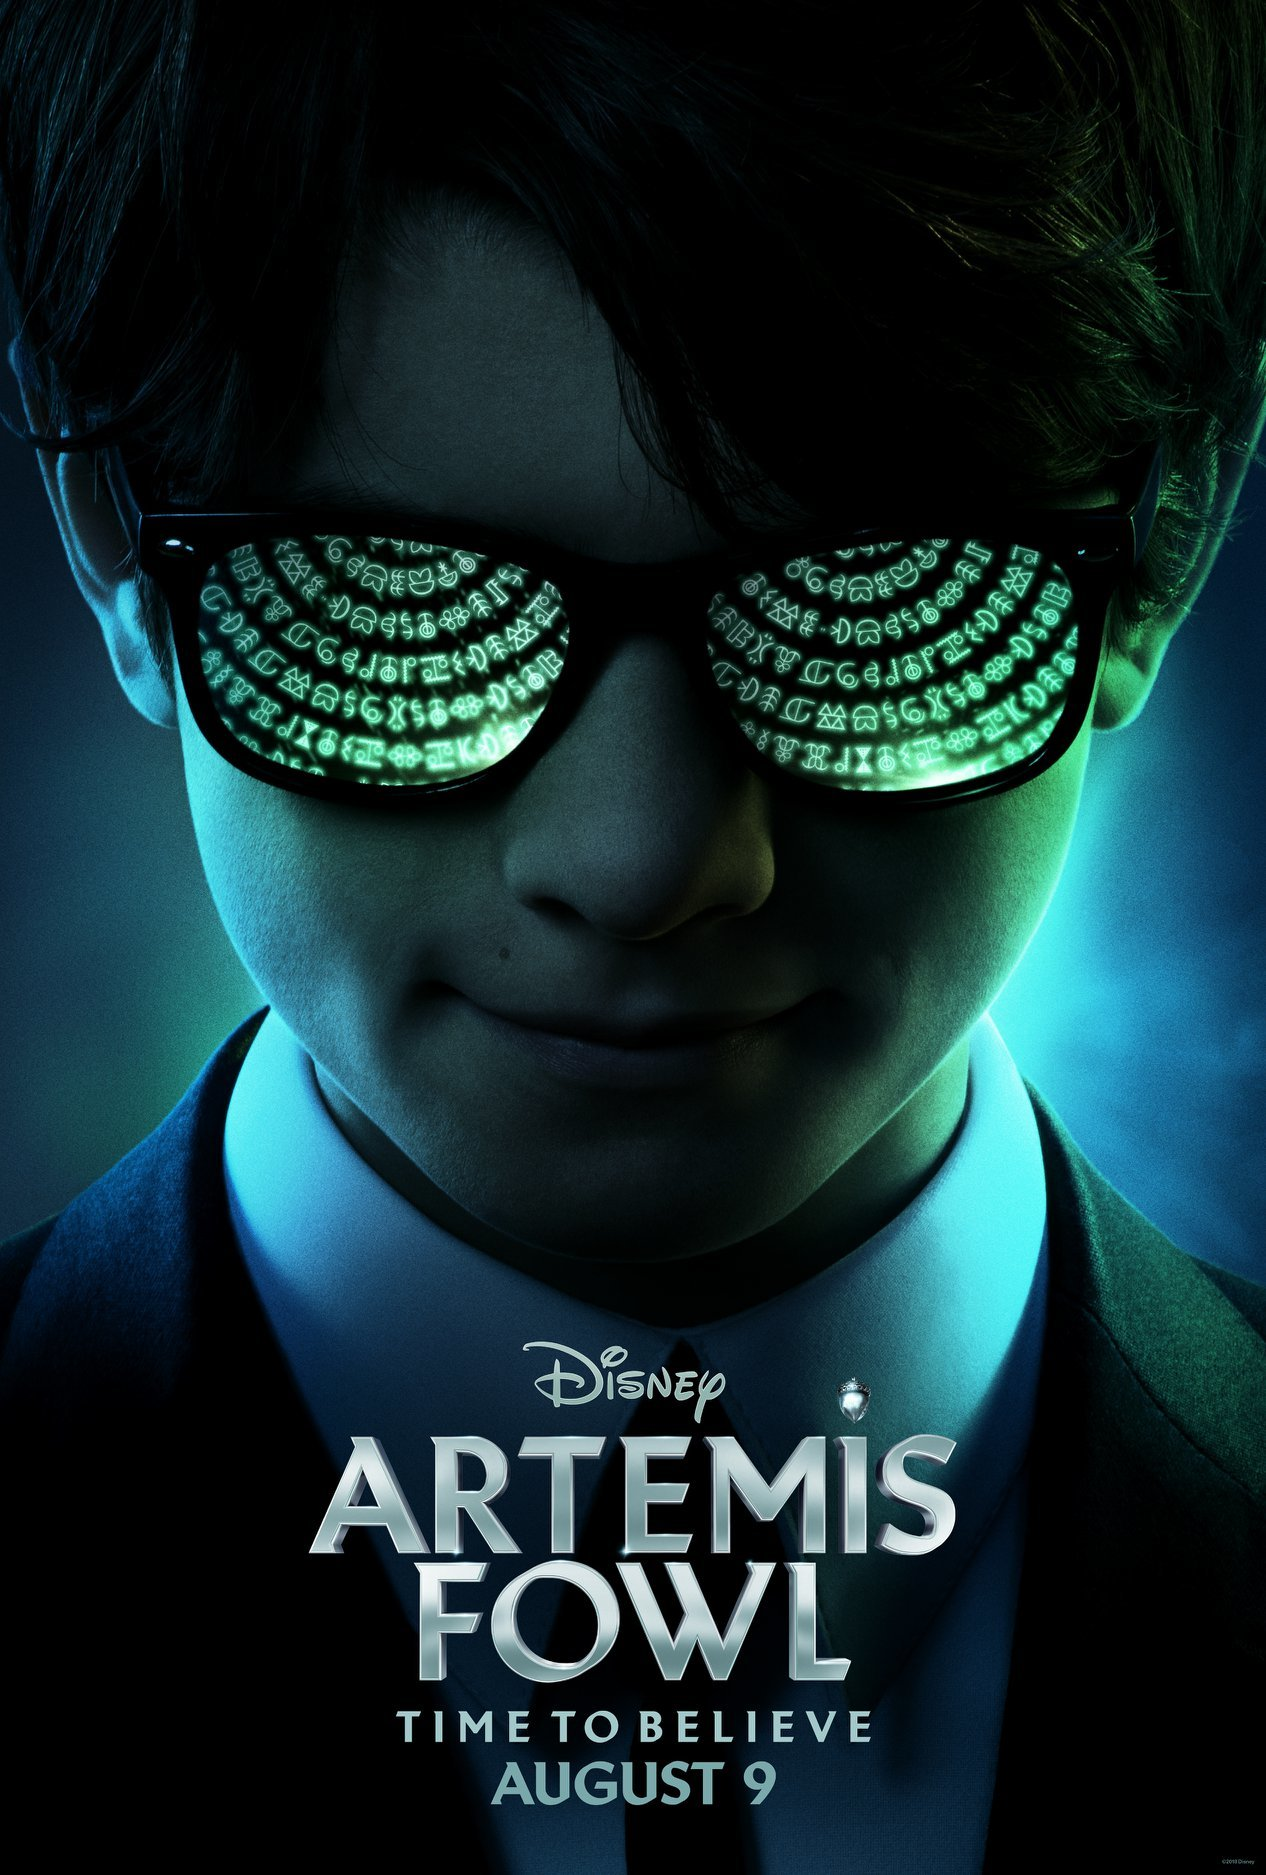 Artemis Fowl - 10 Disney Movies releasing in 2019 and we all can't wait